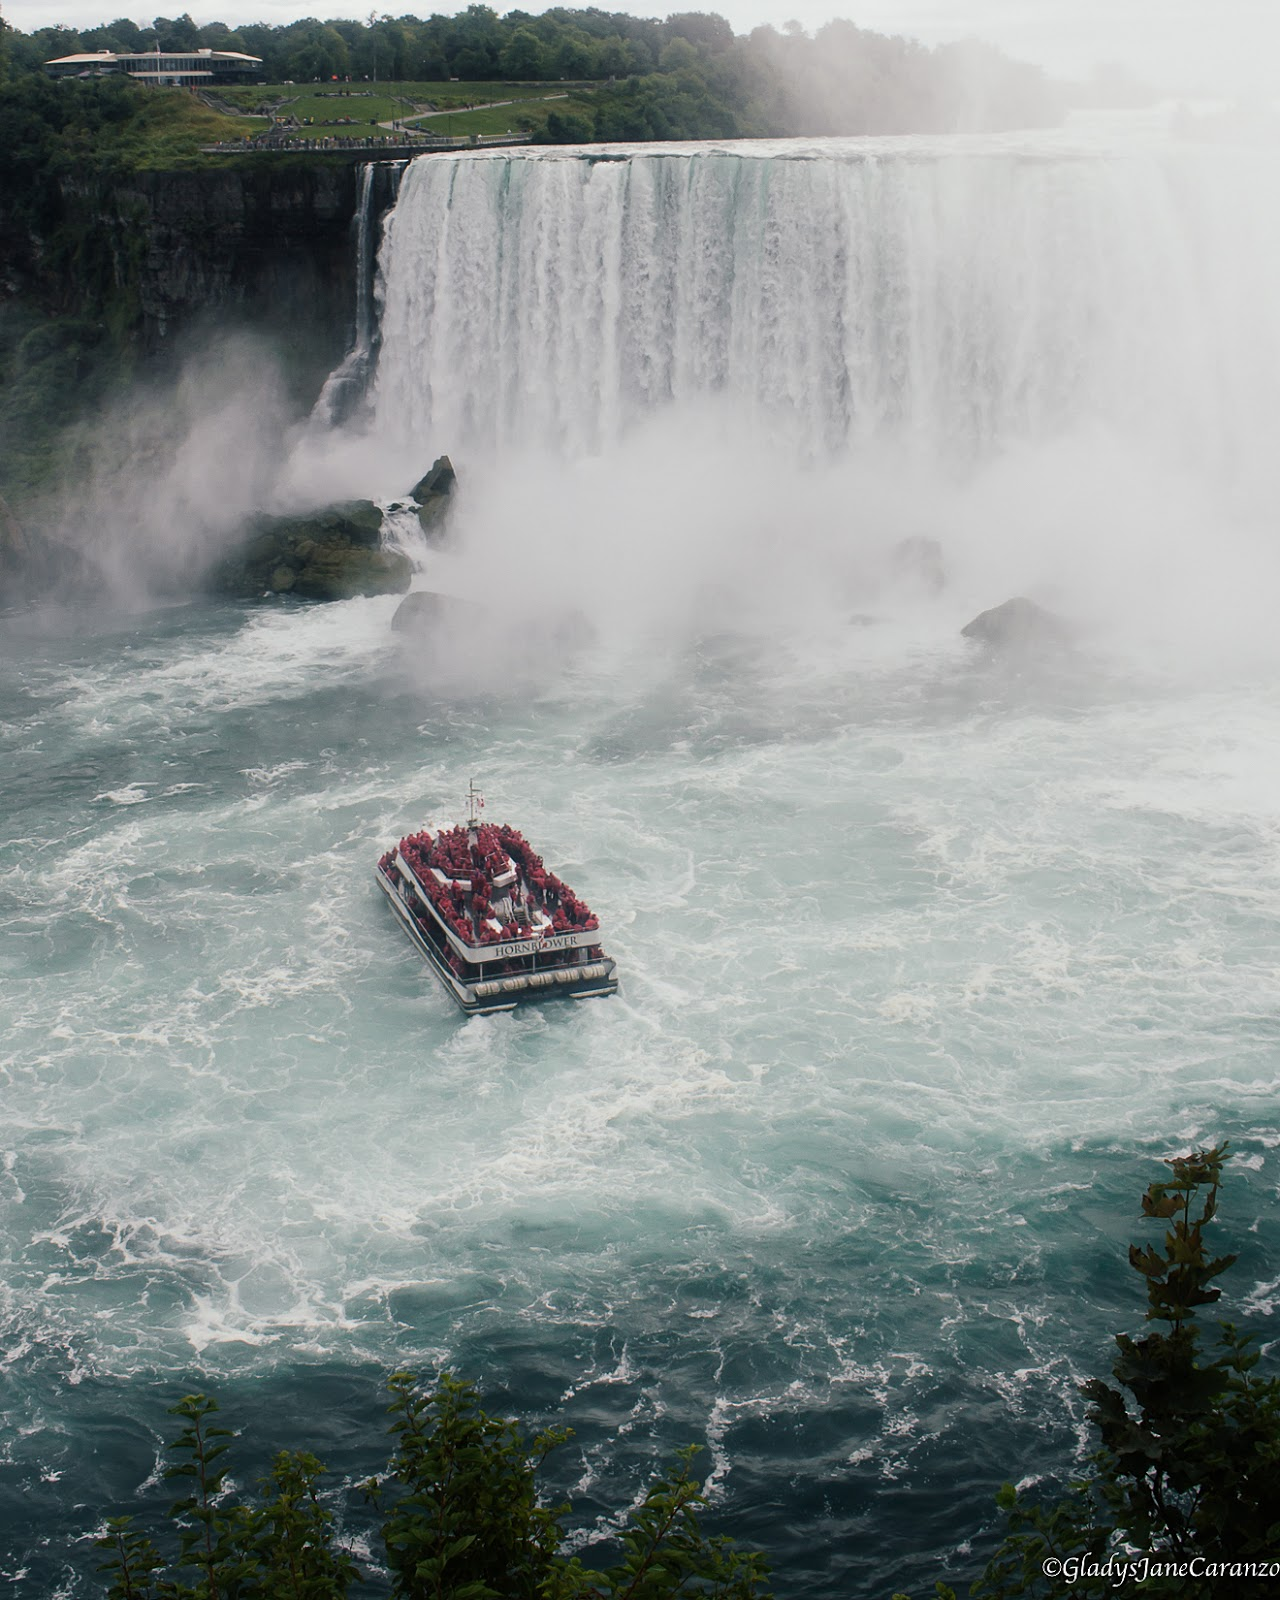 Boat Ride: Things to Do in Niagara Falls